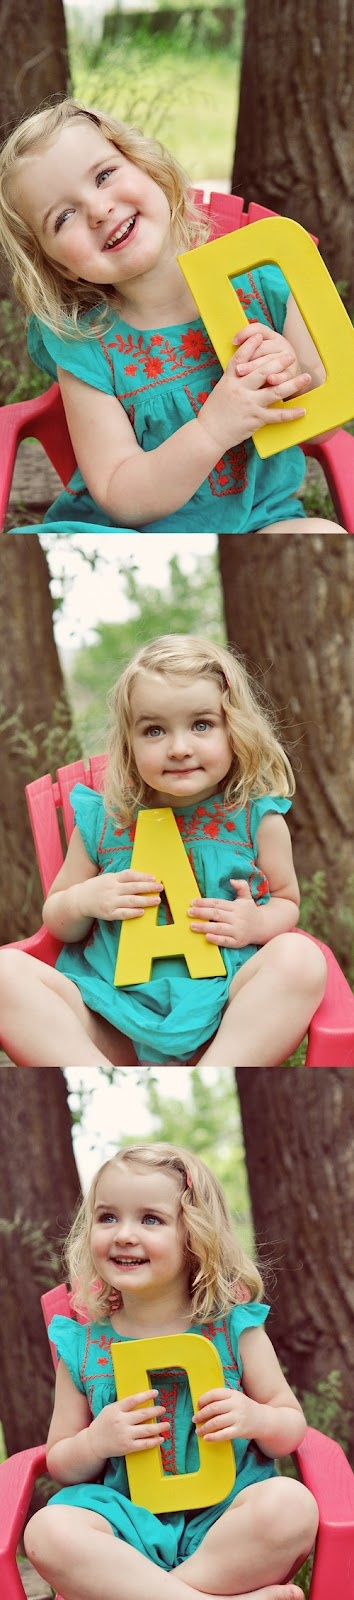 fathers day photo daughter